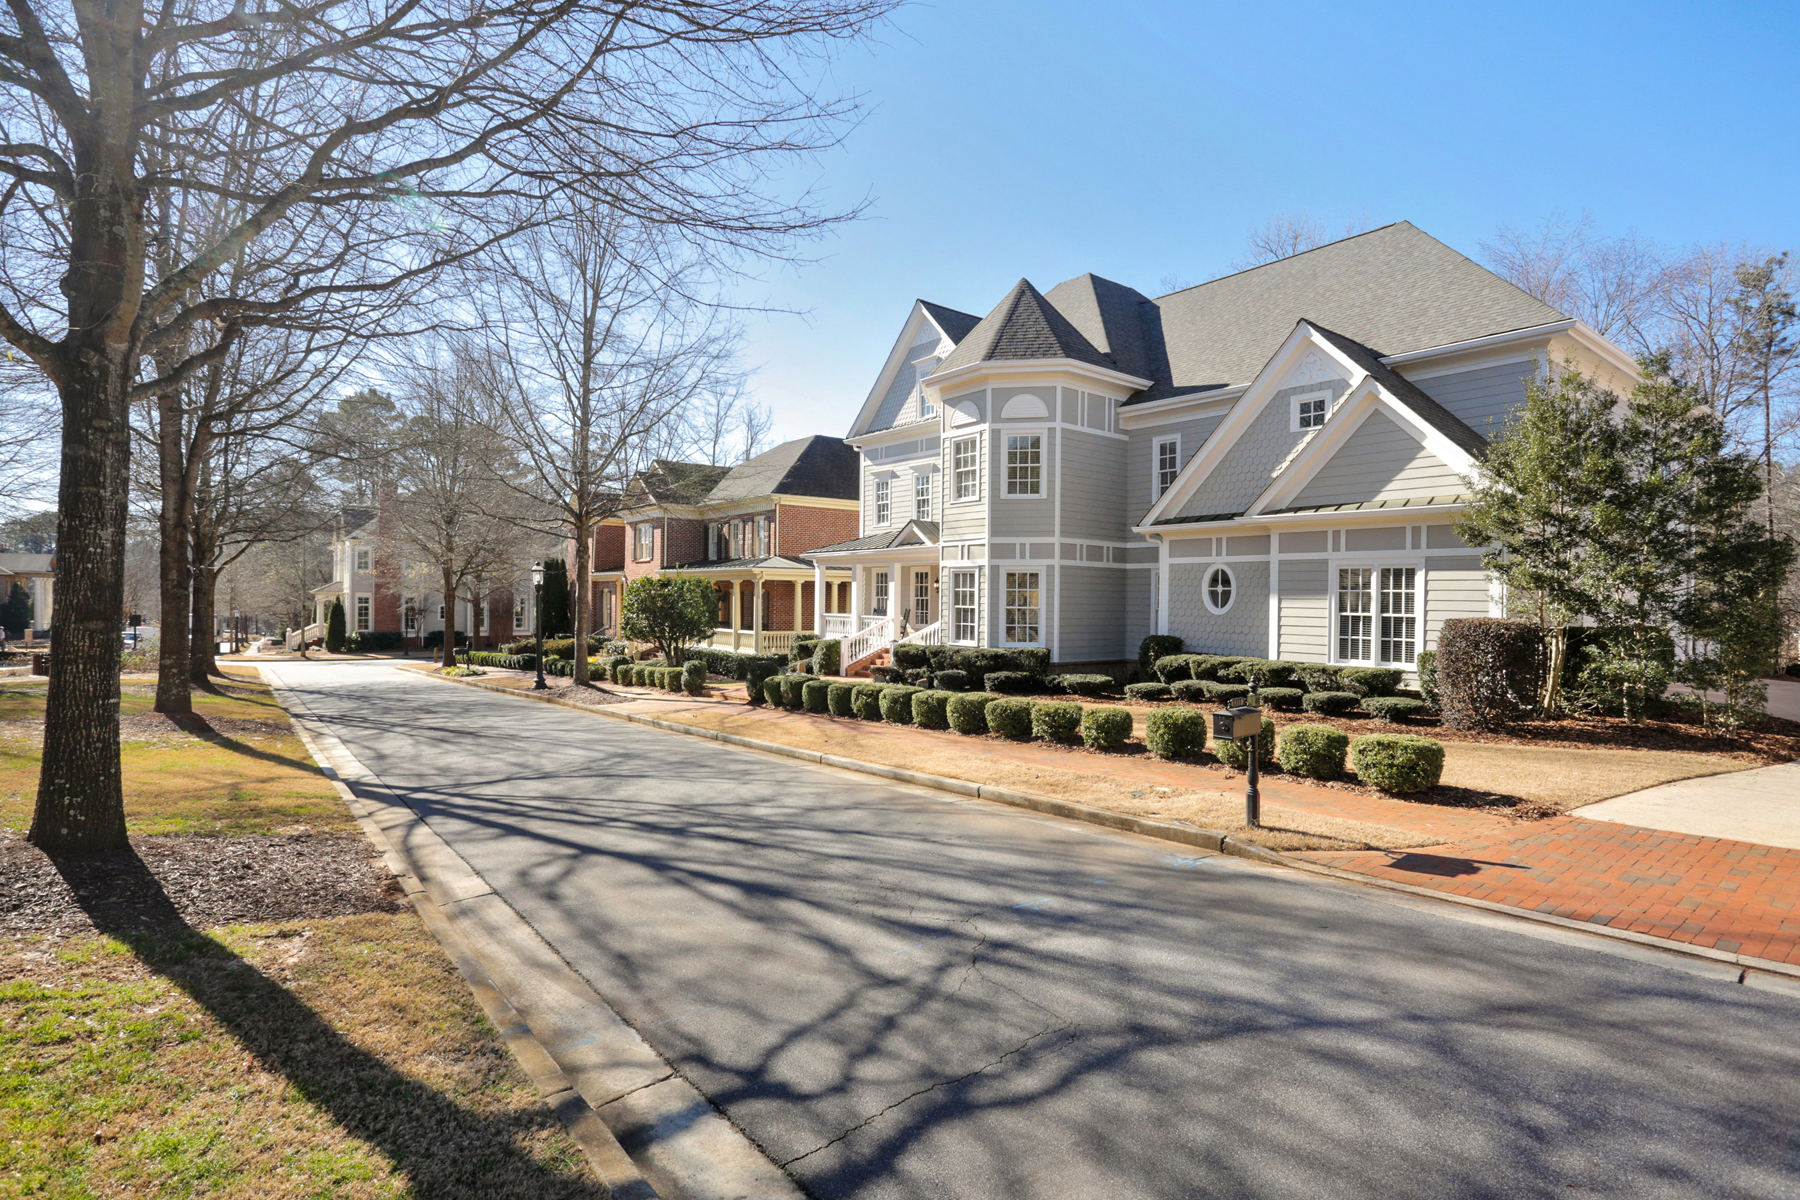 Additional photo for property listing at Cape Cod Home In Ellard 8111 Lawnview Alpharetta, Georgia 30022 Hoa Kỳ